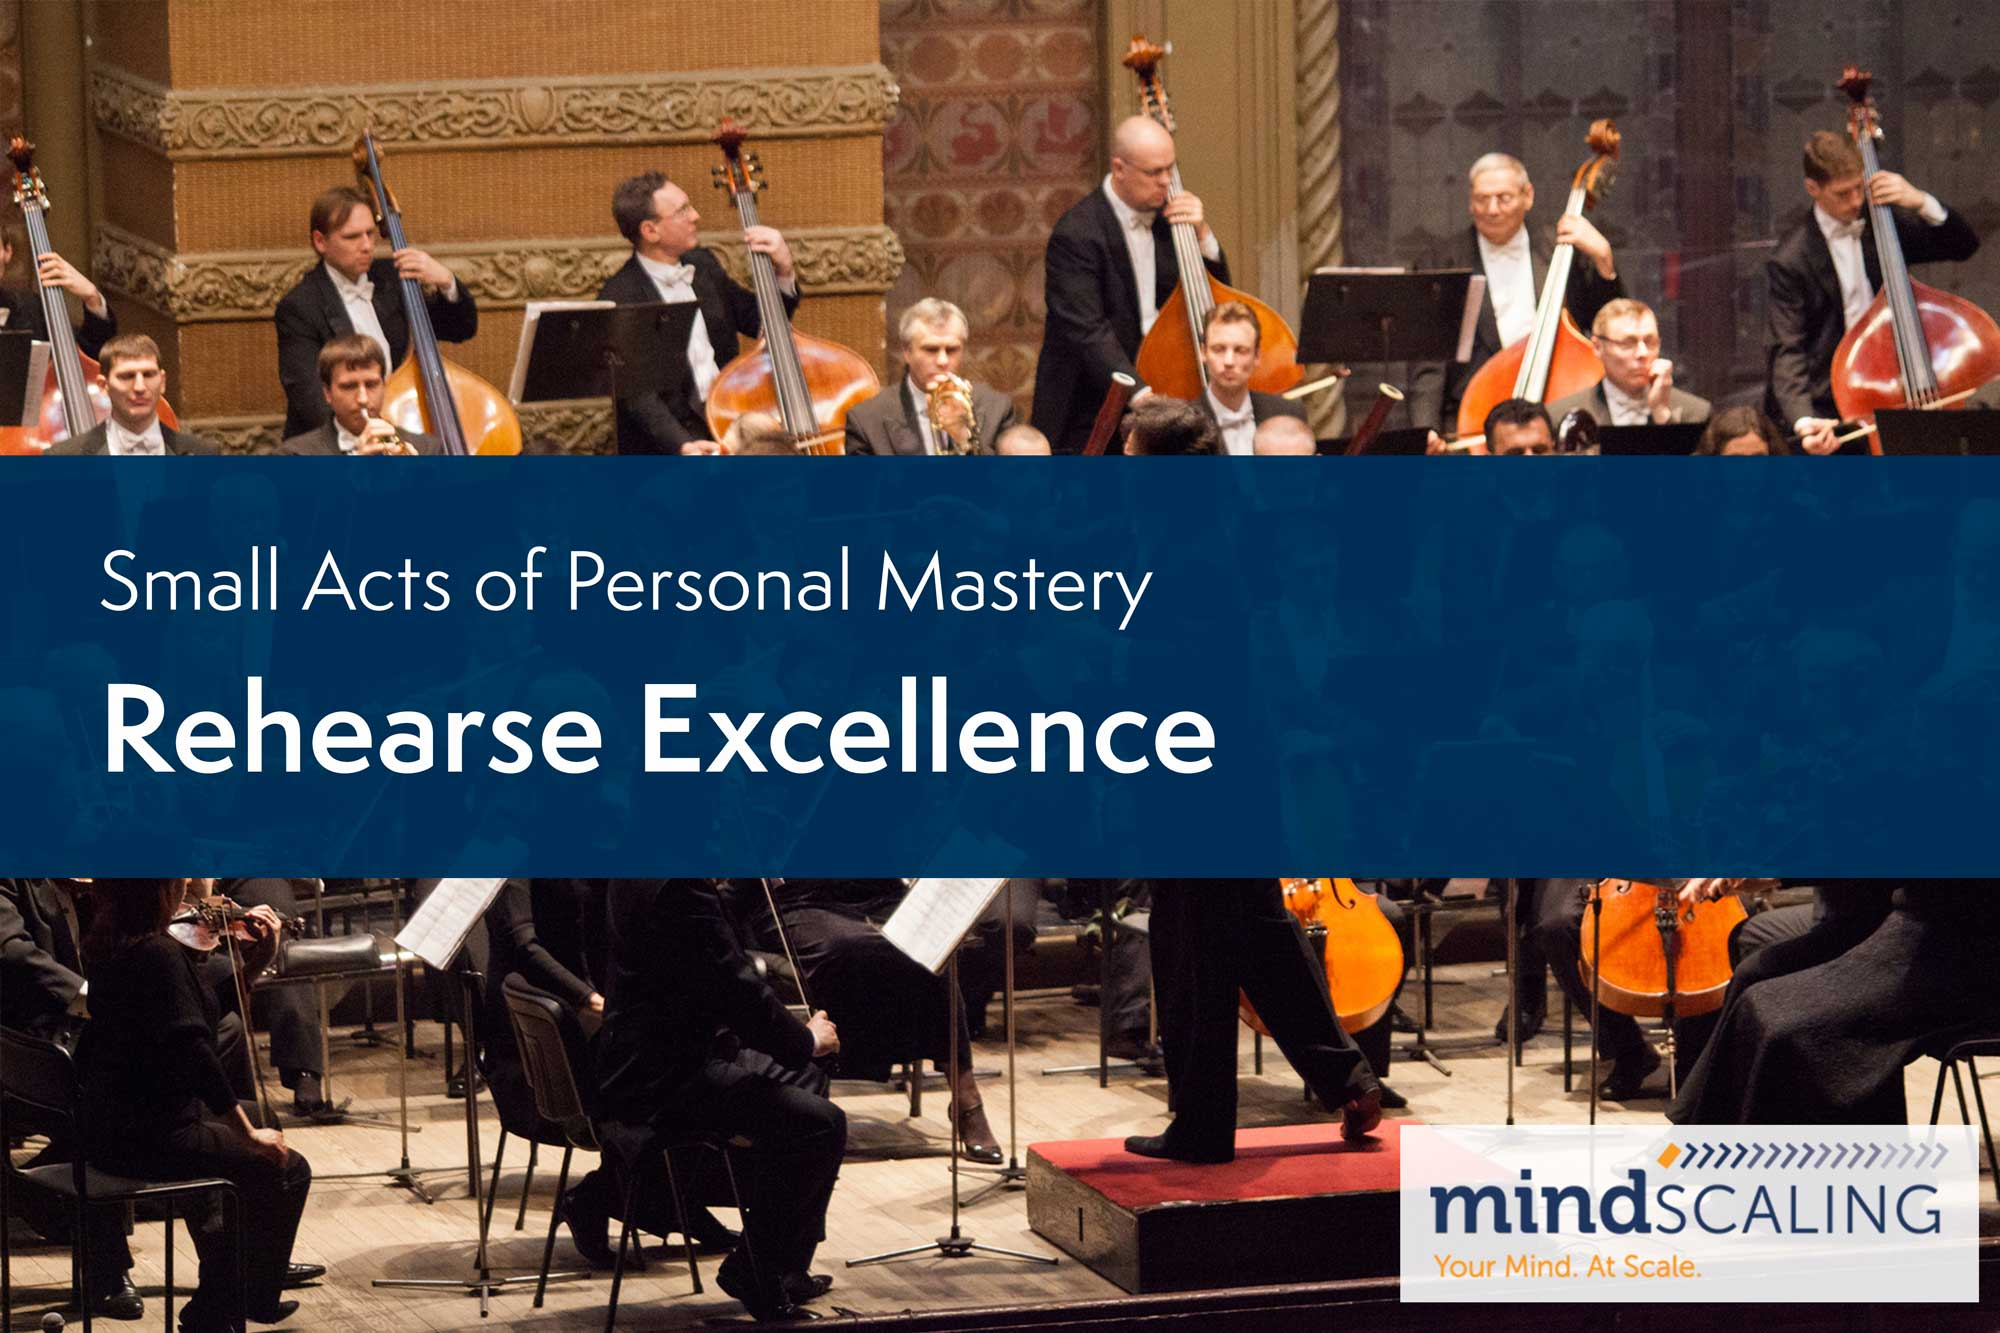 Small Acts of Personal Mastery: Rehearse Excellence